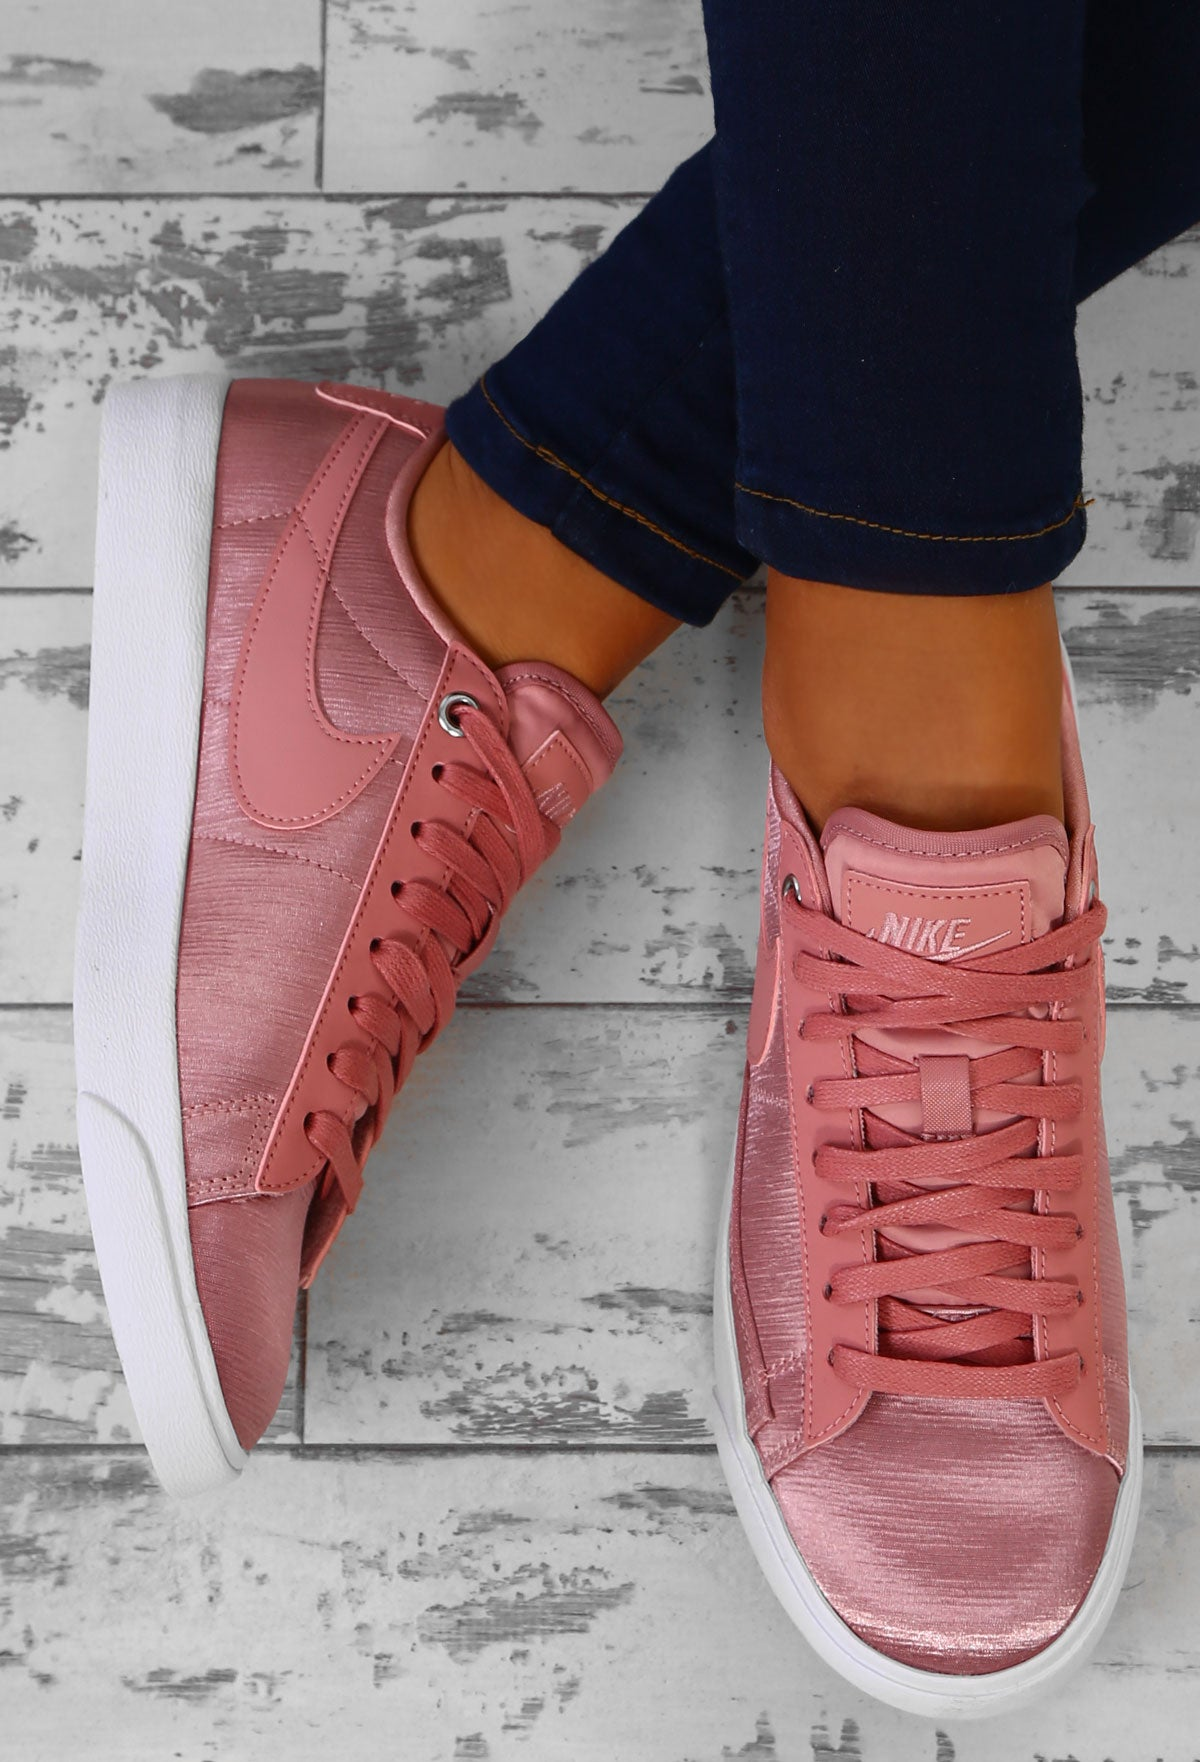 9d5972f0623b Nike Blazer Rust Pink Trainers – Pink Boutique UK